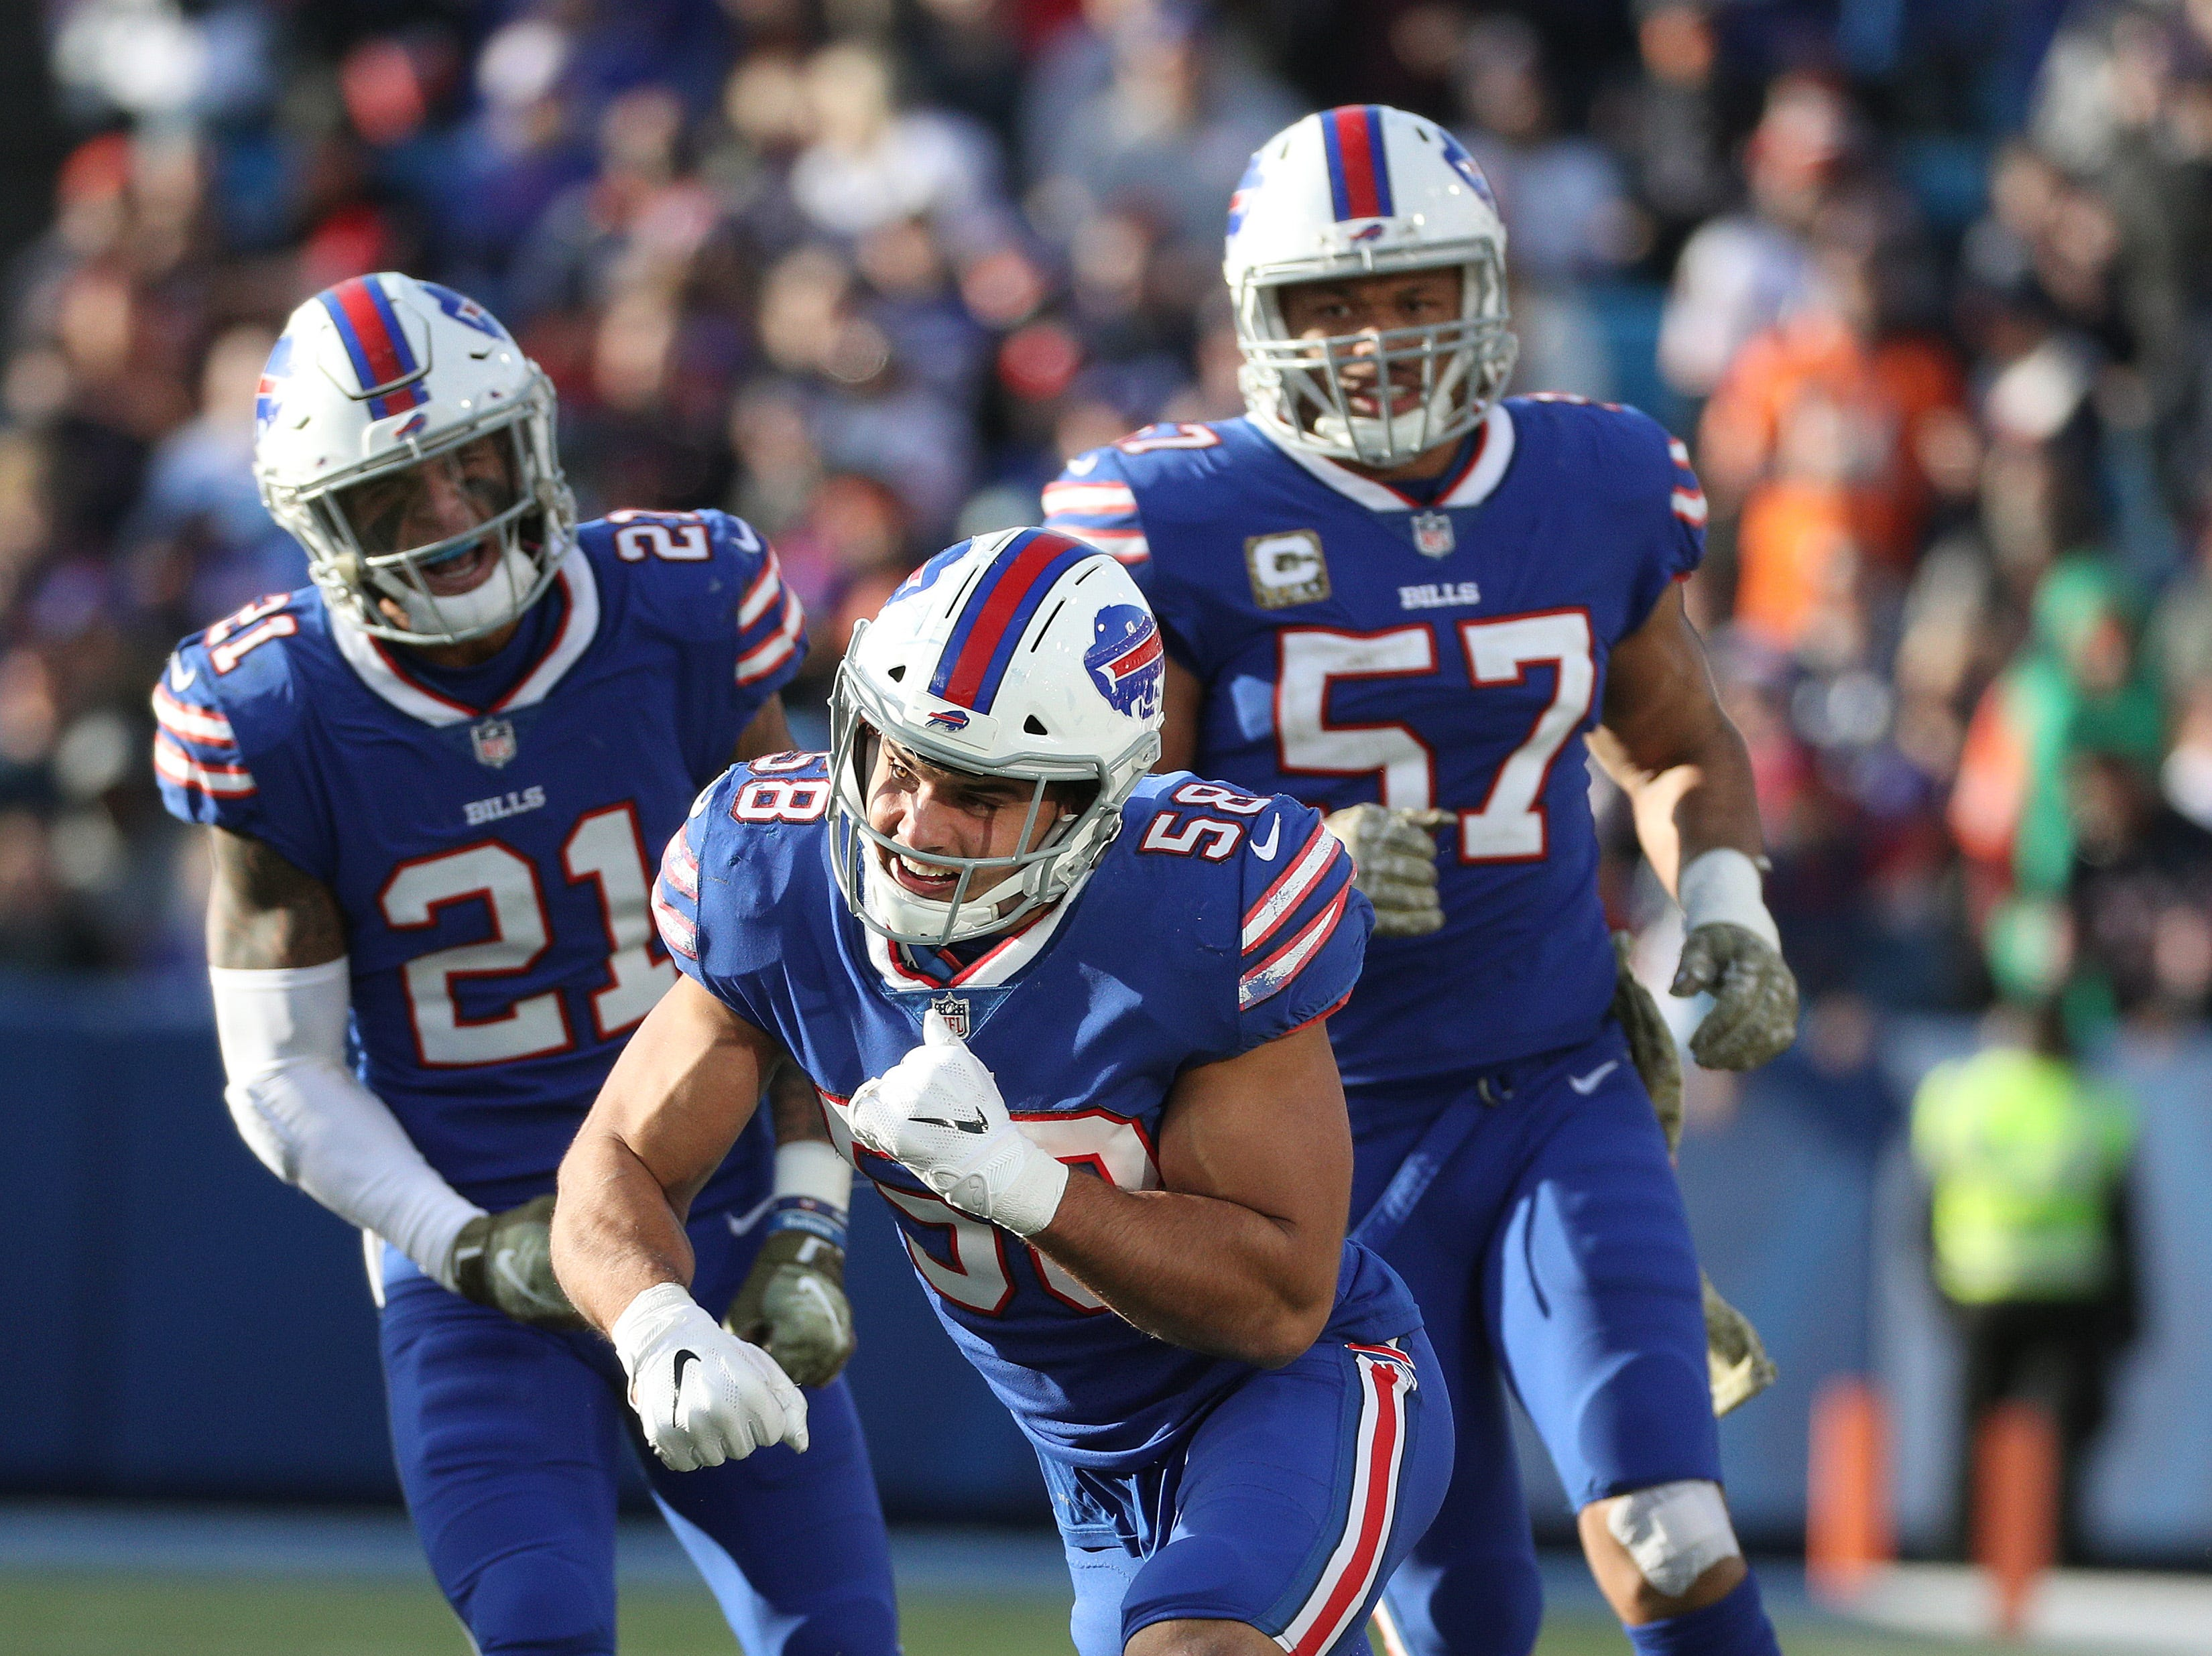 Bills linebacker Matt Milano celebrates a defensive stop.